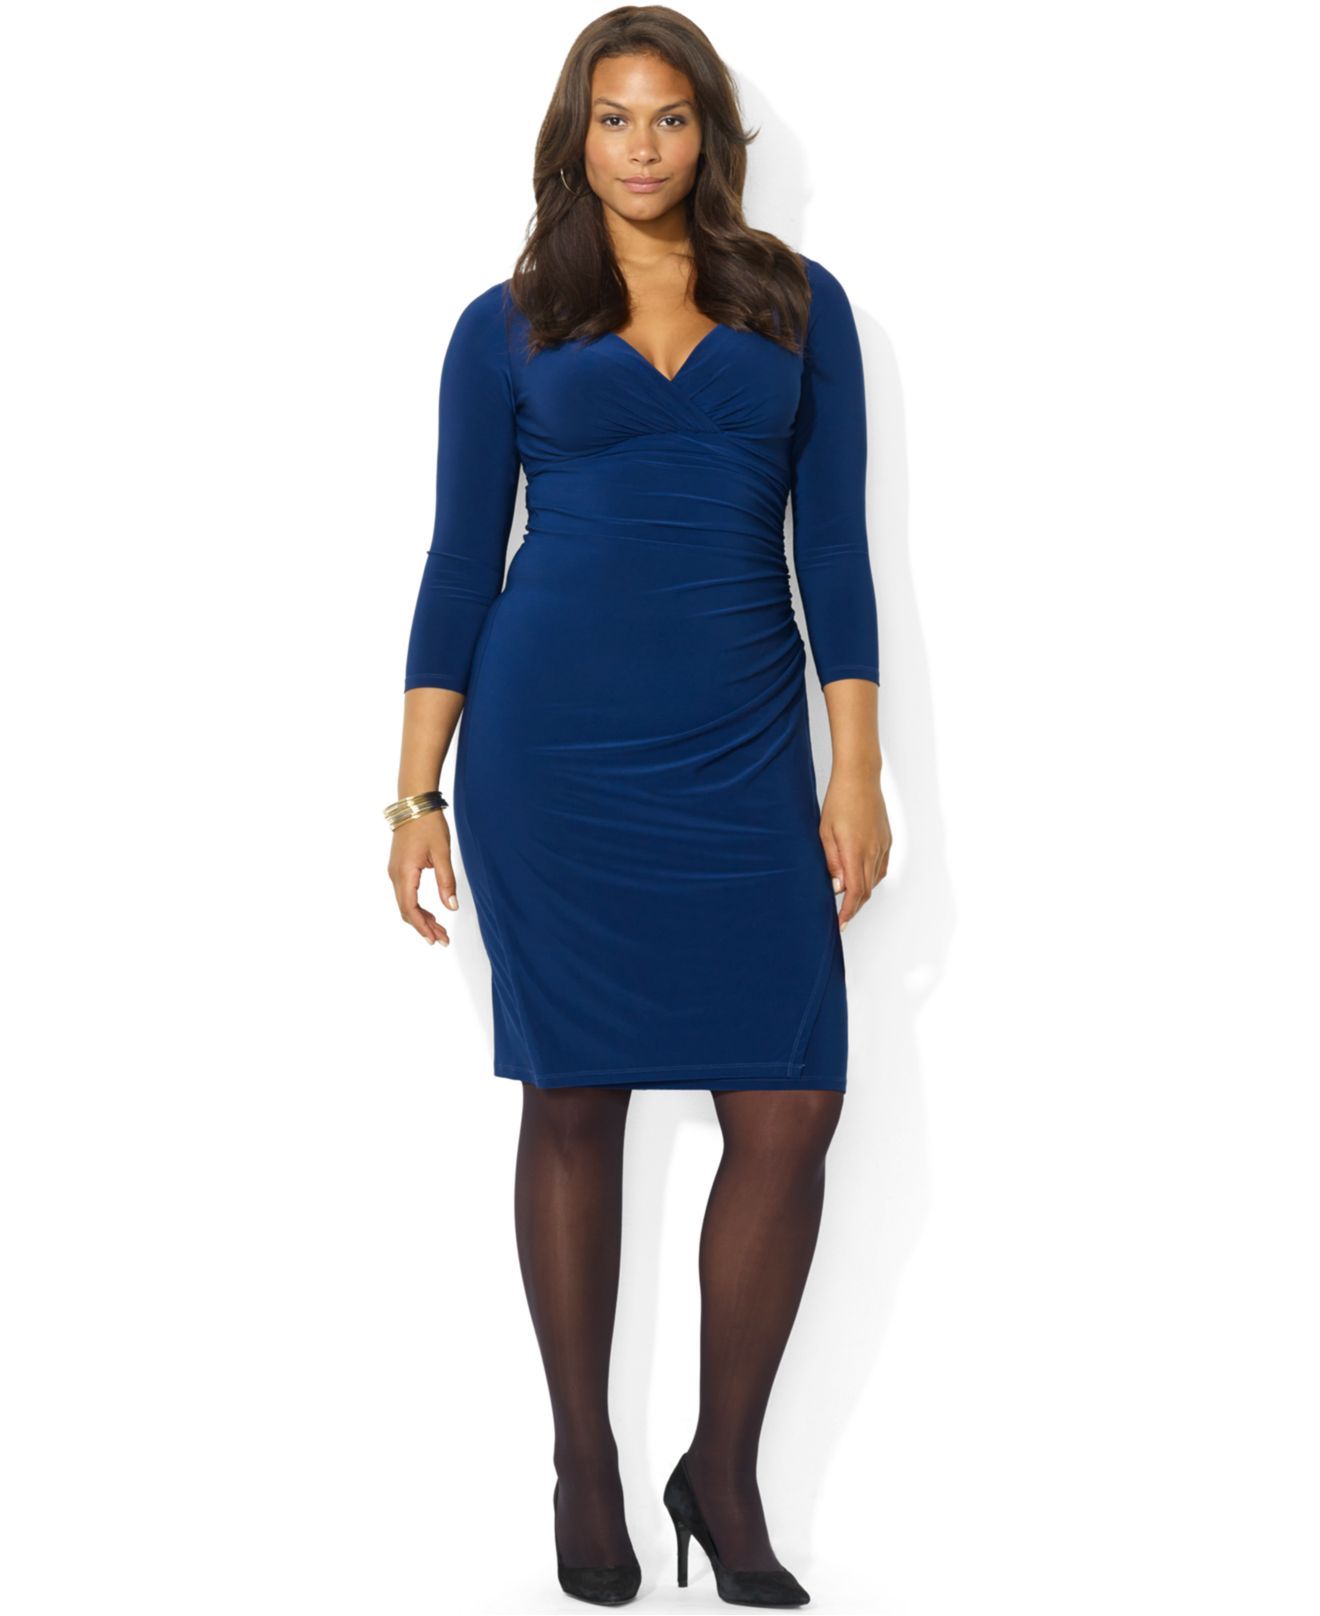 a107290b872 Lauren by Ralph Lauren Plus Size Long-Sleeve Ruched Jersey Dress in ...